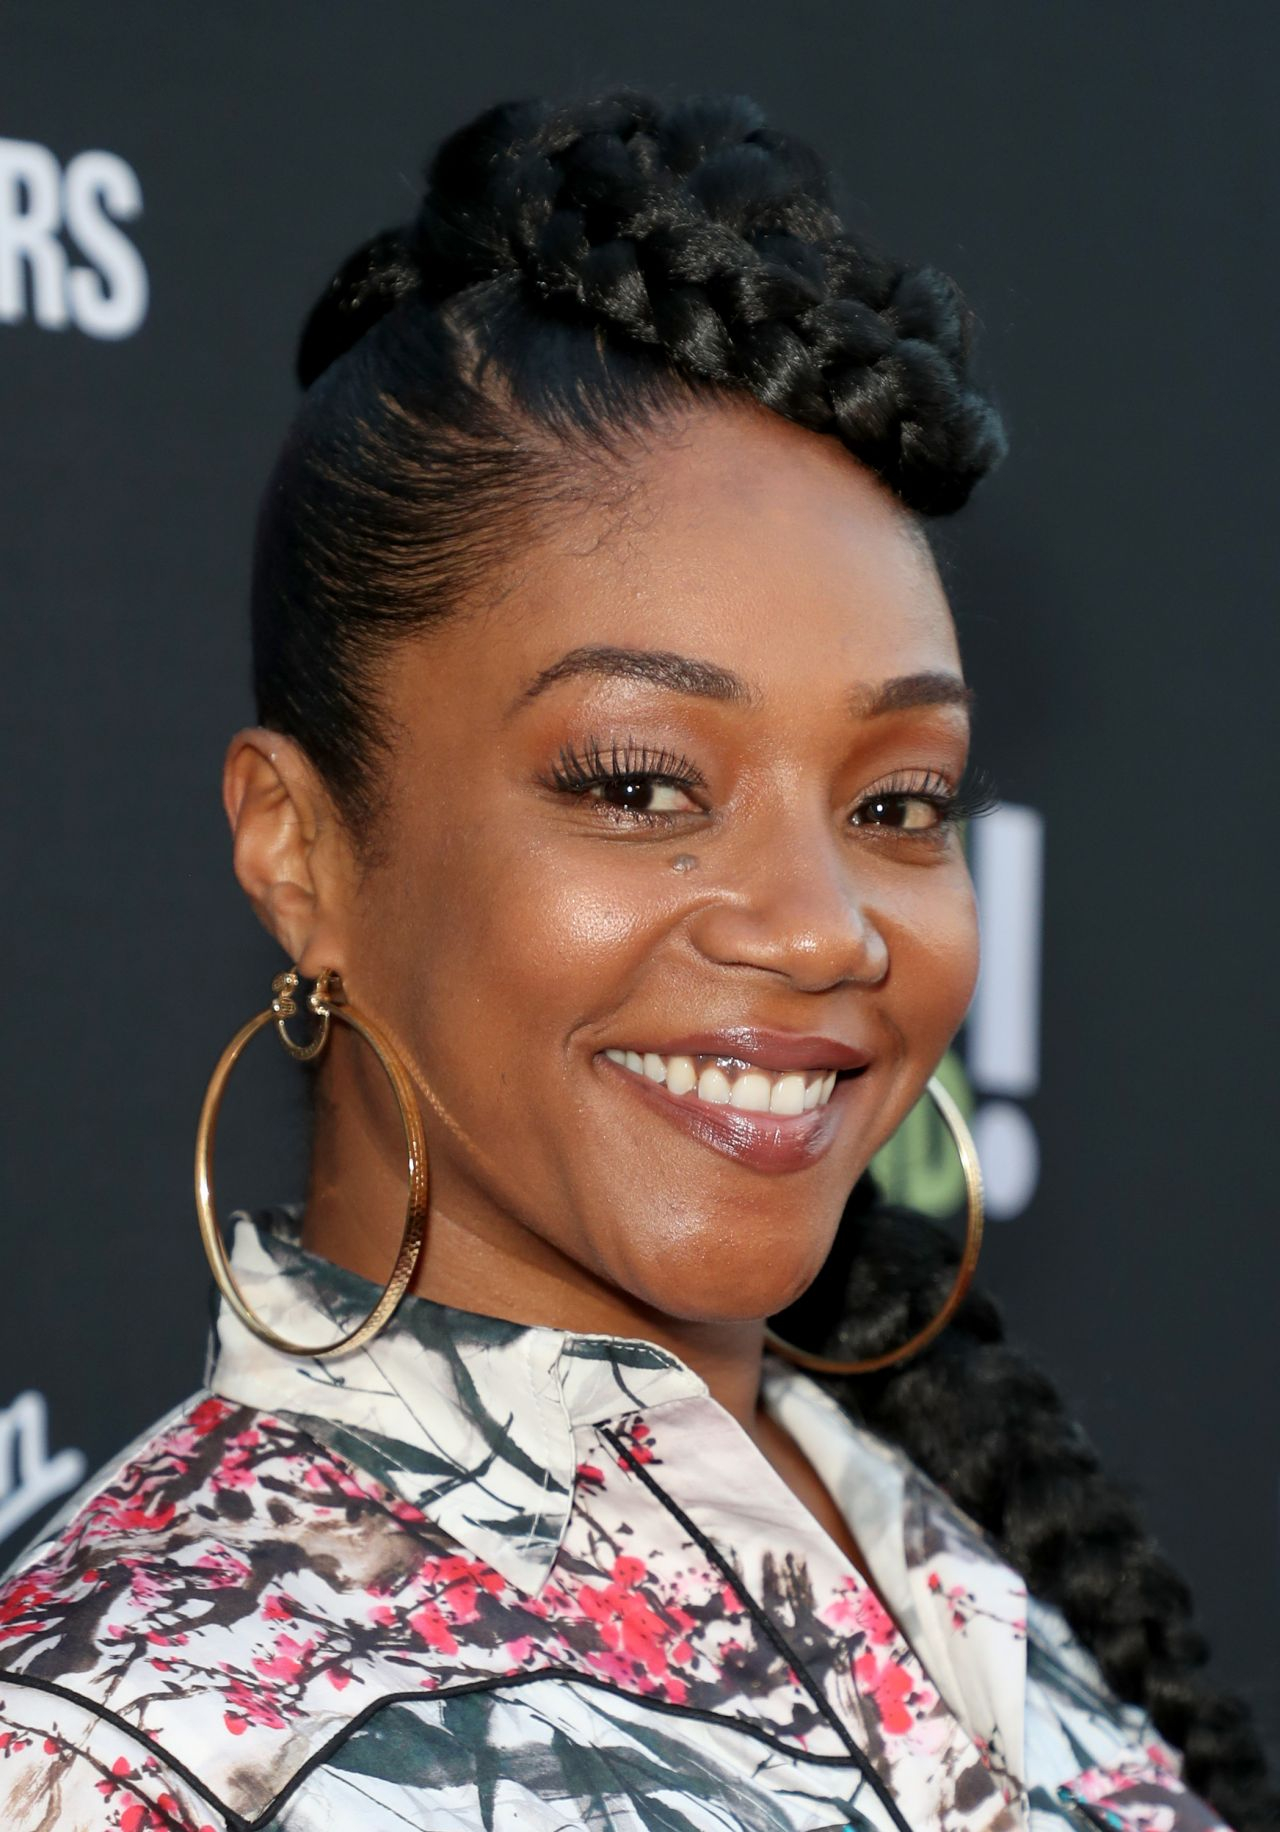 Watch Tiffany Haddish porn videos for free here on Pornhubcom Discover the growing collection of high quality Most Relevant XXX movies and clips No other sex tube